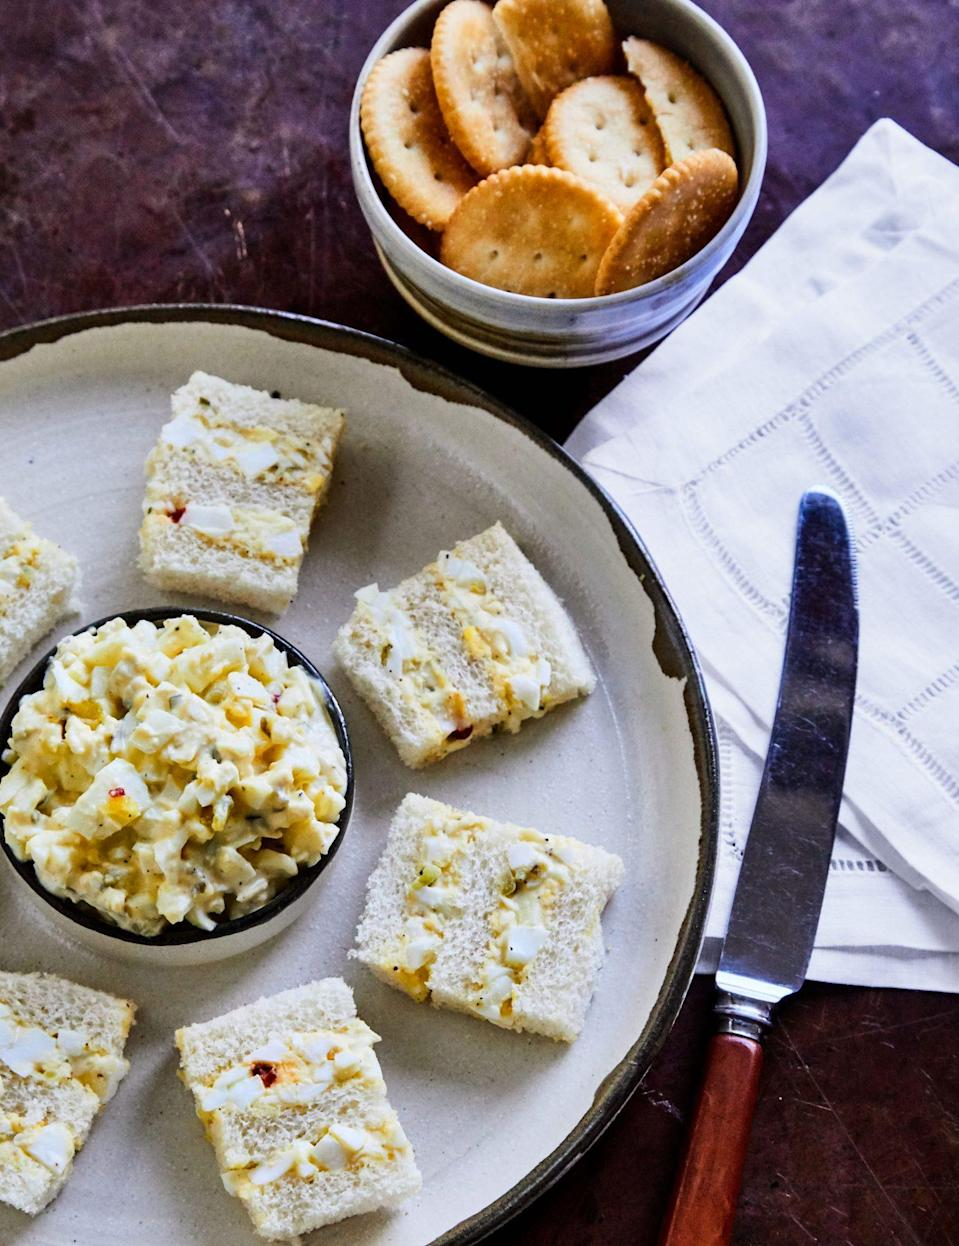 """<p><strong>Recipe: </strong><a href=""""https://www.southernliving.com/recipes/mamas-egg-salad"""" rel=""""nofollow noopener"""" target=""""_blank"""" data-ylk=""""slk:Vera Stewart's Egg Salad"""" class=""""link rapid-noclick-resp""""><strong>Vera Stewart's Egg Salad</strong></a></p> <p>""""There's something so nostalgic about the pairing of a hot summer afternoon and a cold, soft egg salad sandwich on pillowy Wonder Bread. If you don't already add Durkee Famous Sauce to your recipe, prepare to be hooked—if you can find it in the grocery store. My grandmother has been <a href=""""https://www.southernliving.com/dairy/eggs/durkee-sauce-deviled-eggs"""" rel=""""nofollow noopener"""" target=""""_blank"""" data-ylk=""""slk:sneaking it into her egg salad and deviled eggs"""" class=""""link rapid-noclick-resp"""">sneaking it into her egg salad and deviled eggs</a> for as long as I can remember, and you just can't beat the tangy flair. Vera Stewart's recipe is no-fuss and insanely simple, as egg salad should be."""" Kaitlyn Yarborough, Assistant Editor</p>"""